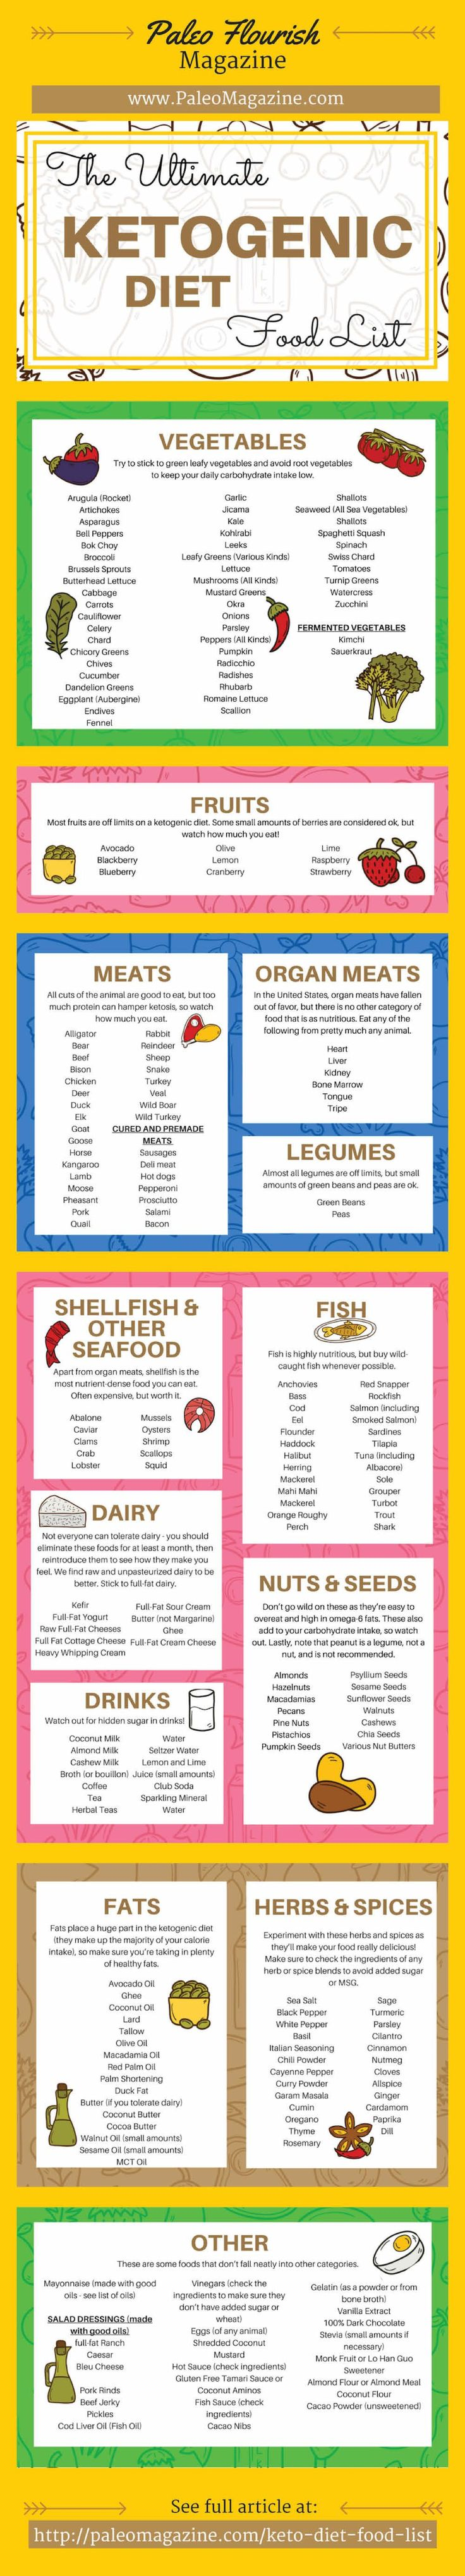 Ketogenic Diet Food List Infographic - http://paleomagazine.stfi.re/ketogenic-diet-food-list #ketogenic #keto